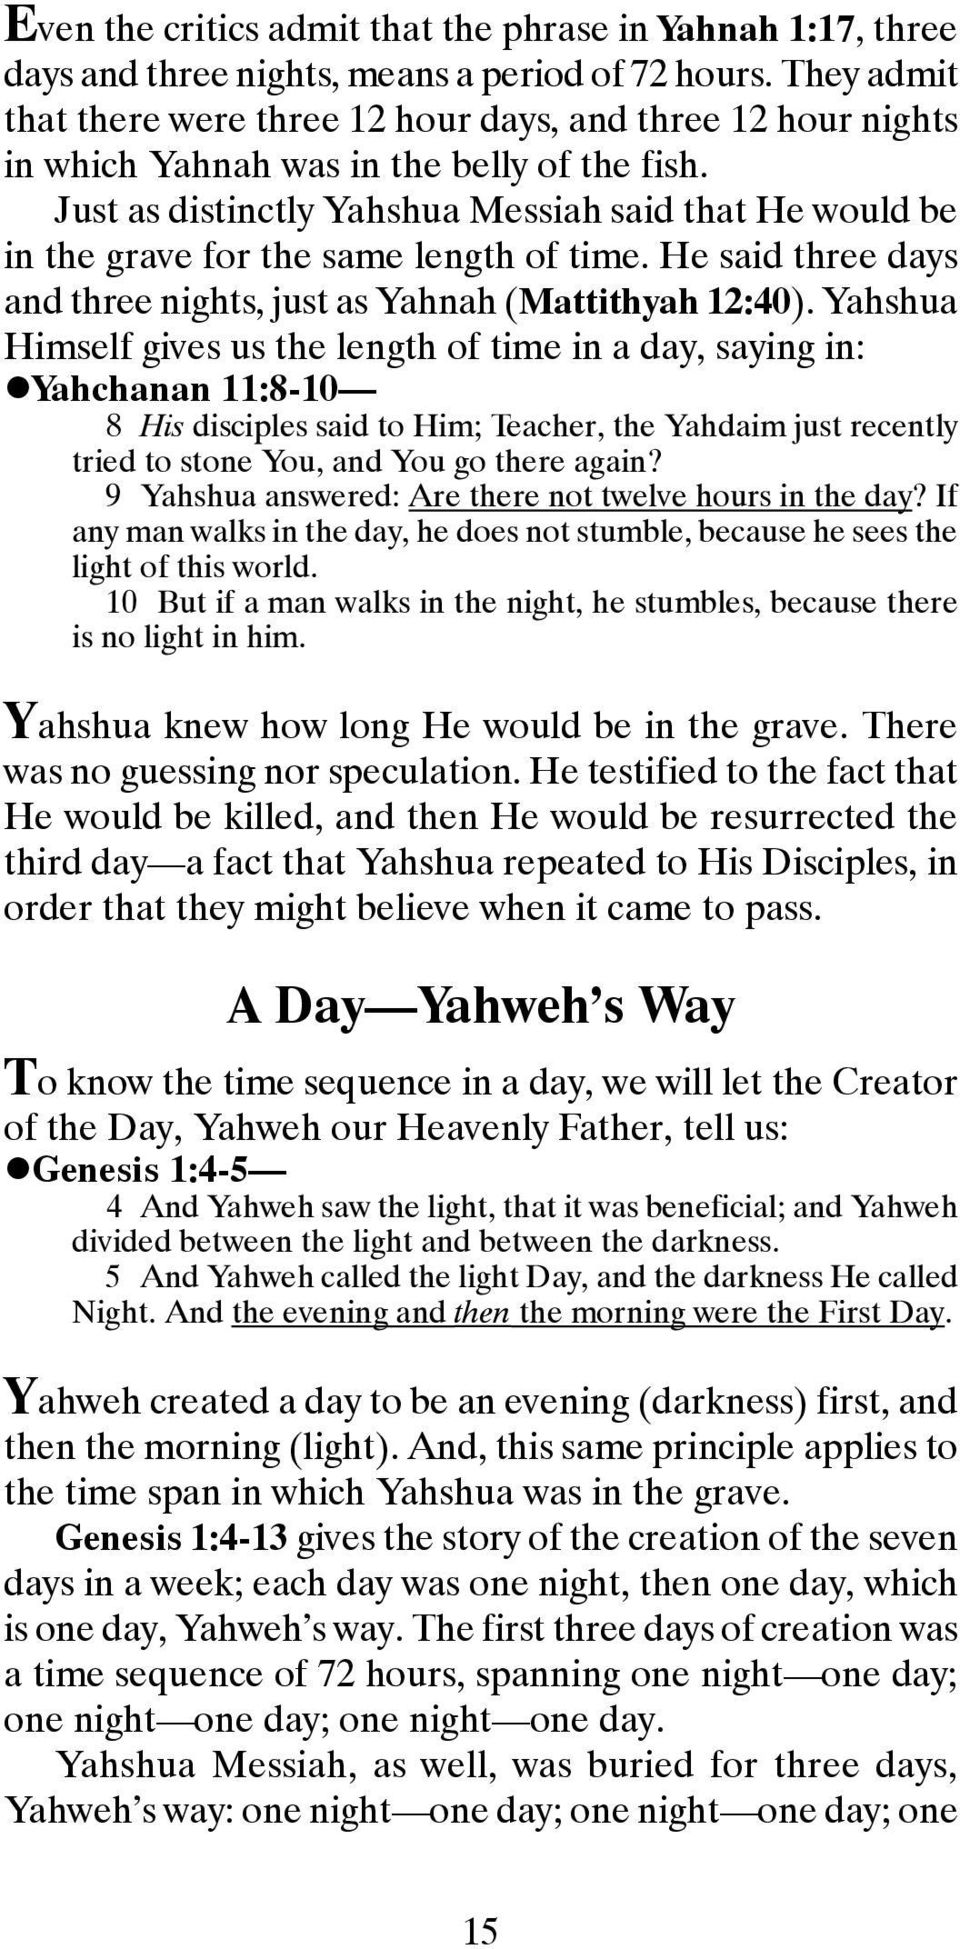 Just as distinctly Yahshua Messiah said that He would be in the grave for the same length of time. He said three days and three nights, just as Yahnah (Mattithyah 12:40).